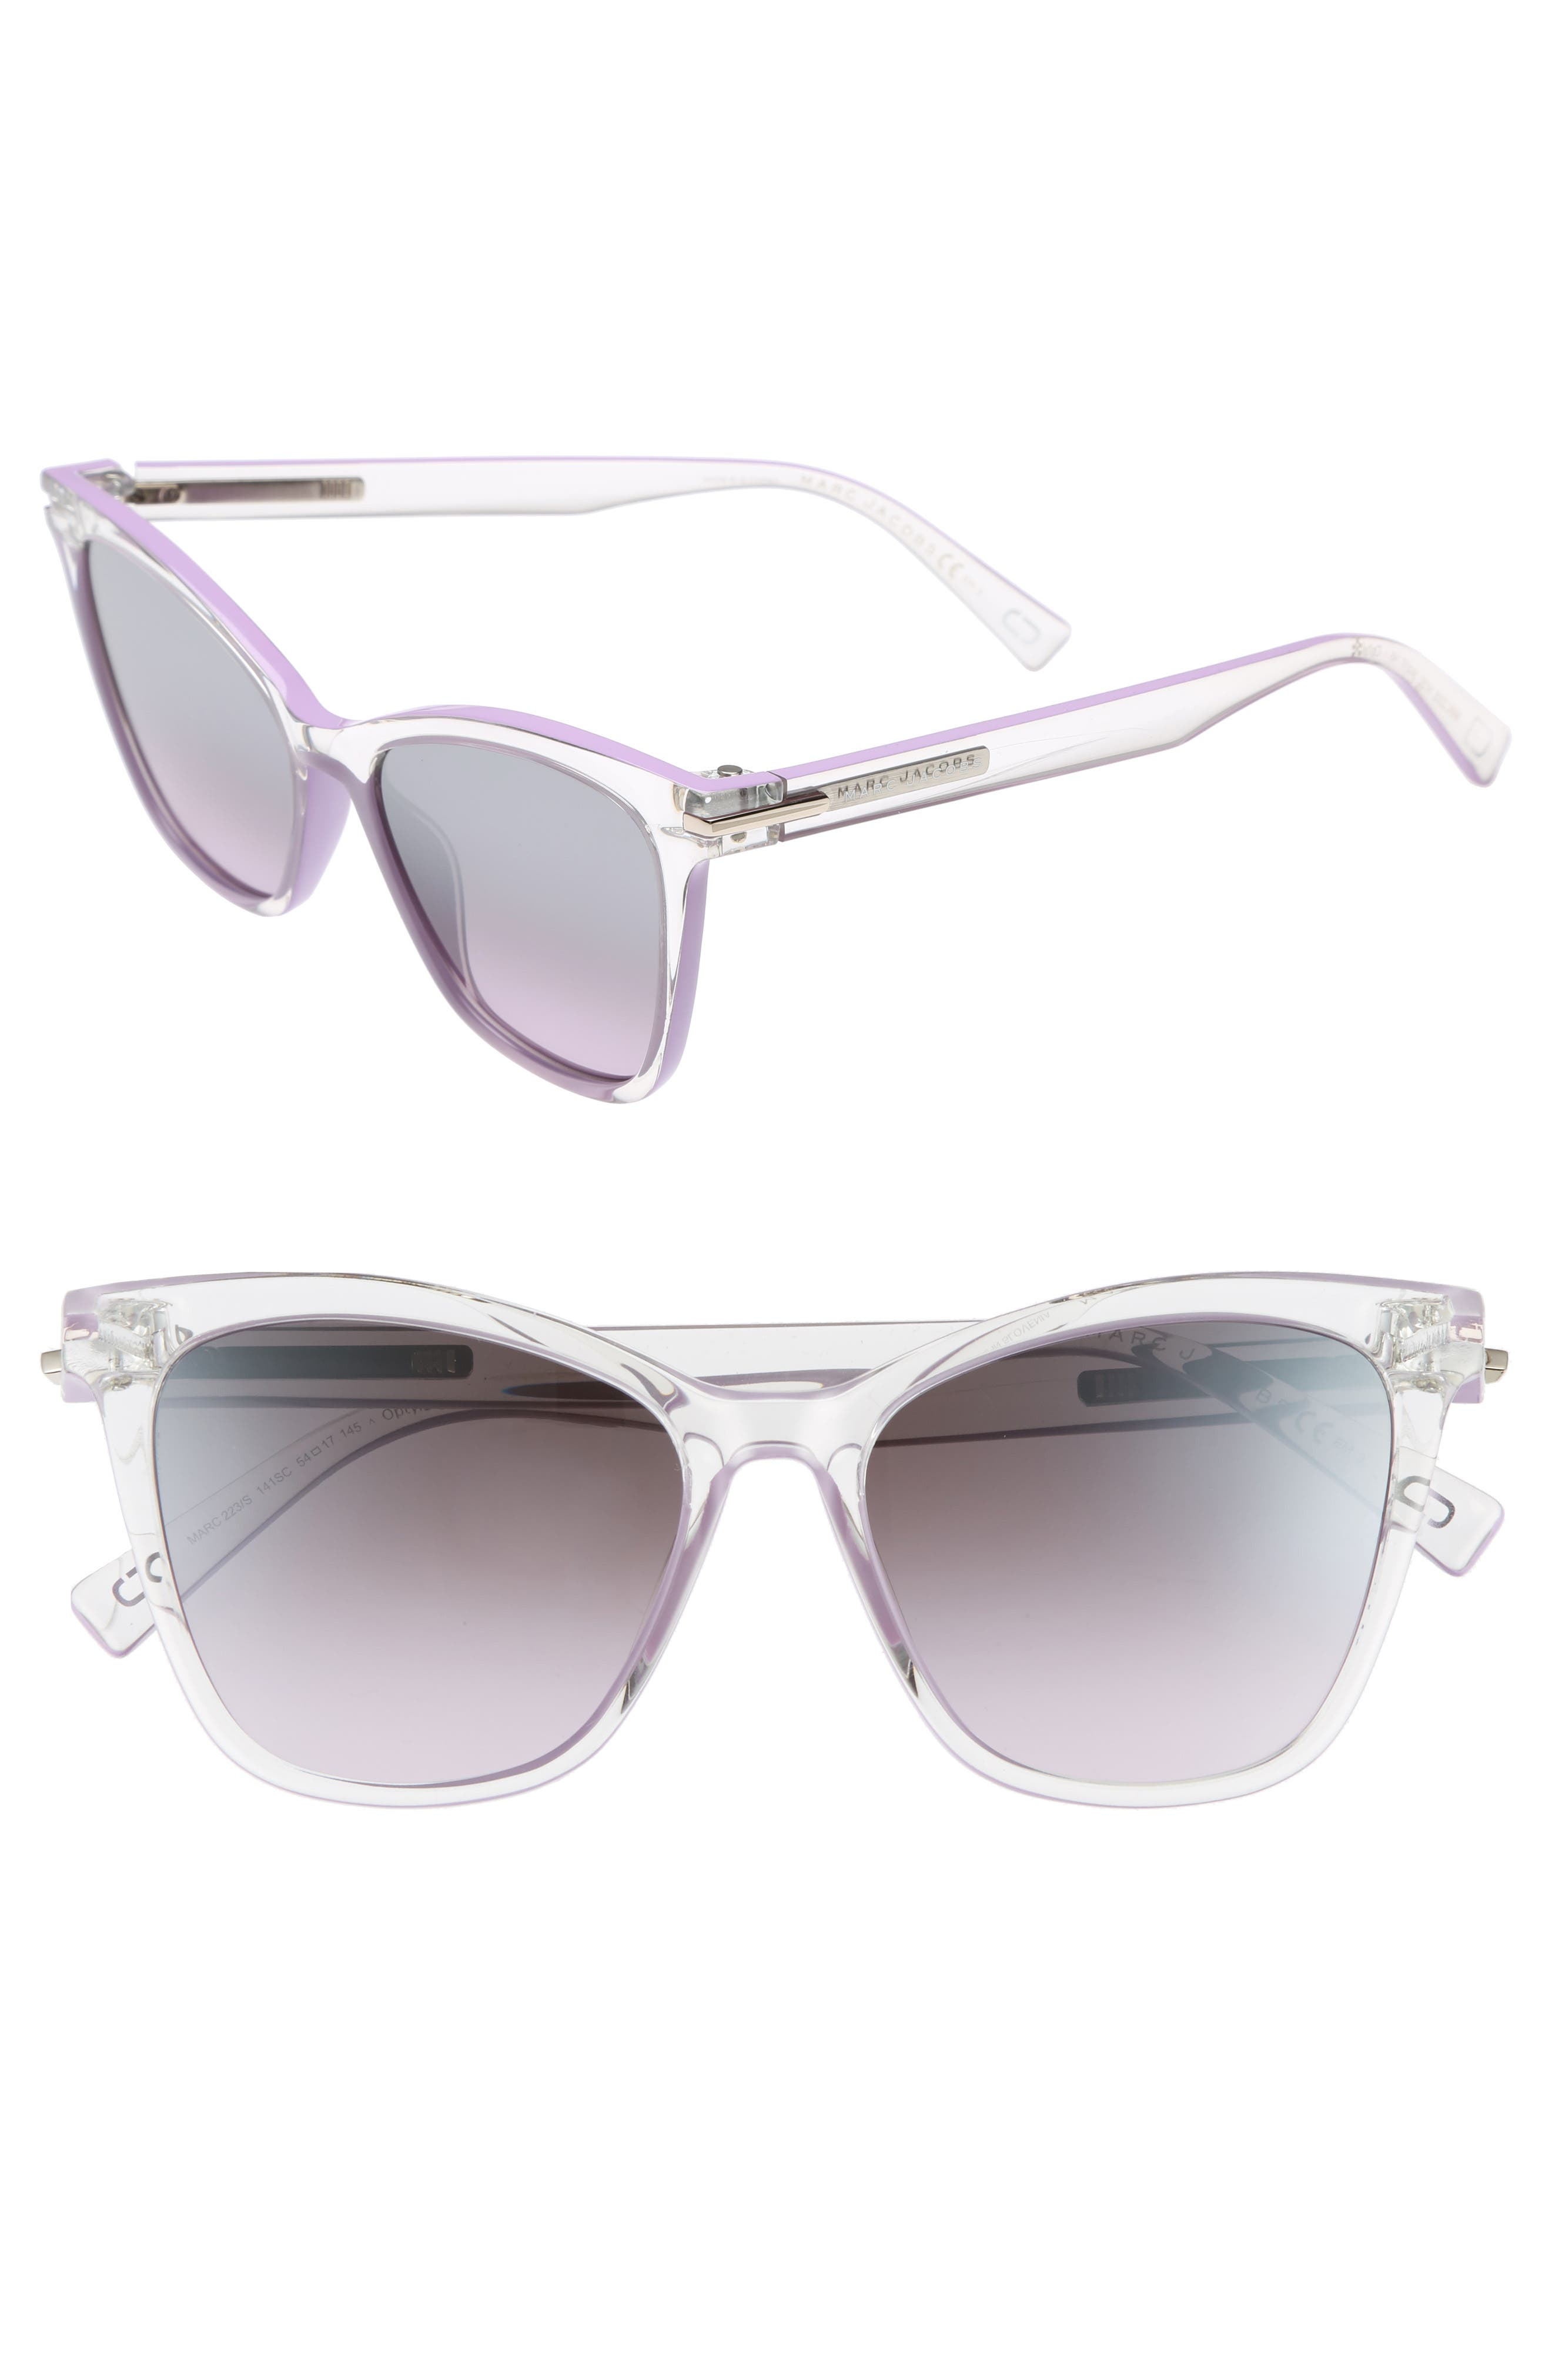 54mm Gradient Lens Sunglasses,                         Main,                         color, Crystal Clear Violet